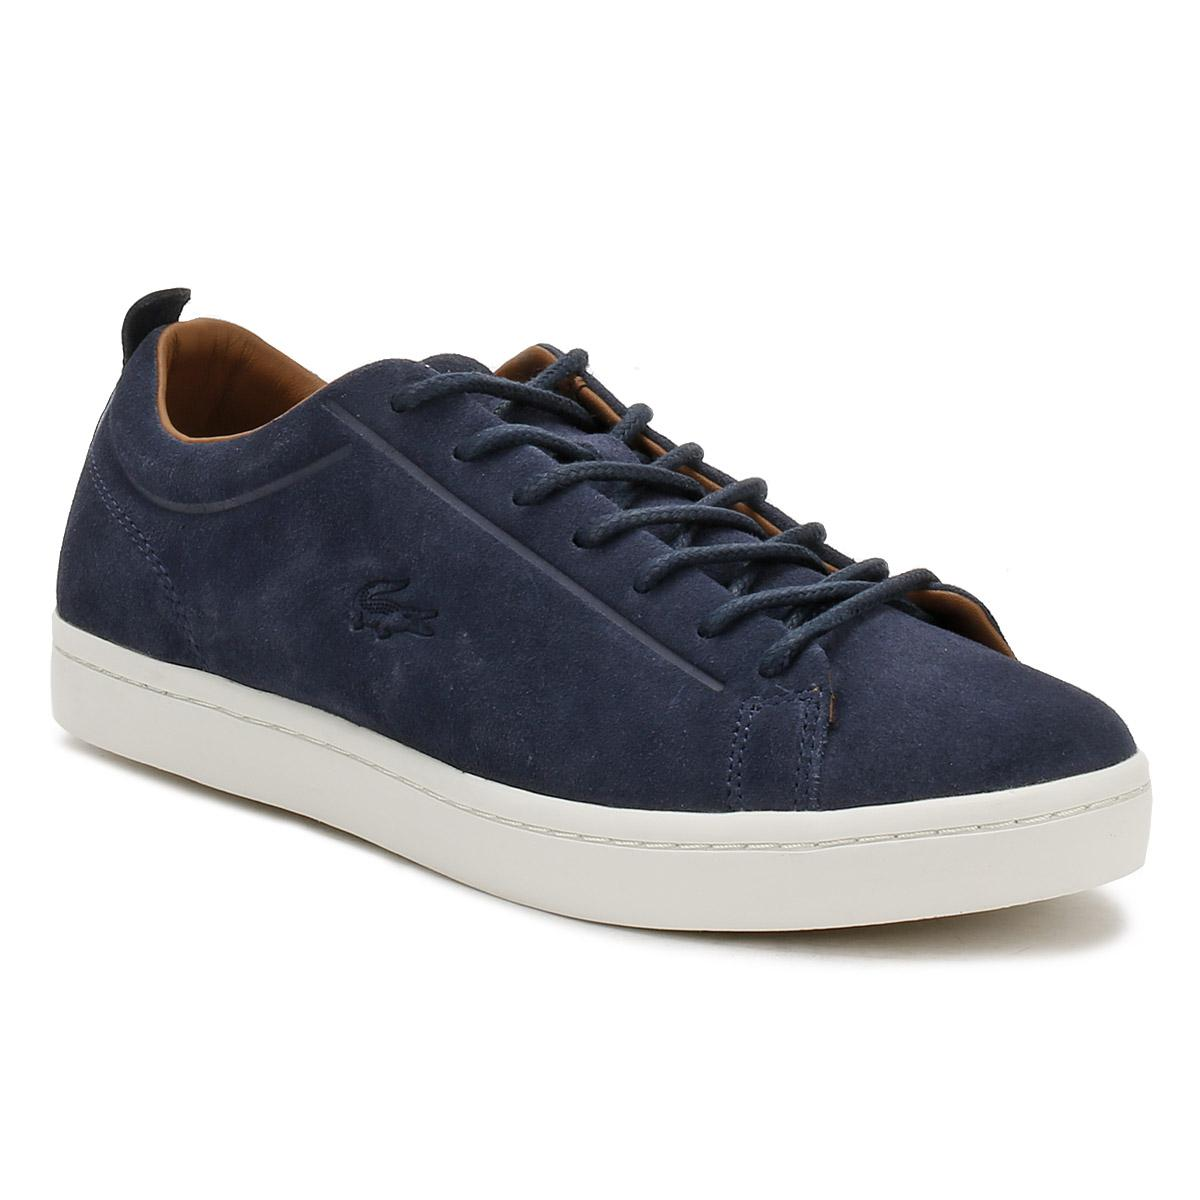 73624dffe611c Lyst - Lacoste Mens Navy Straightset 317 3 Trainers in Blue for Men ...